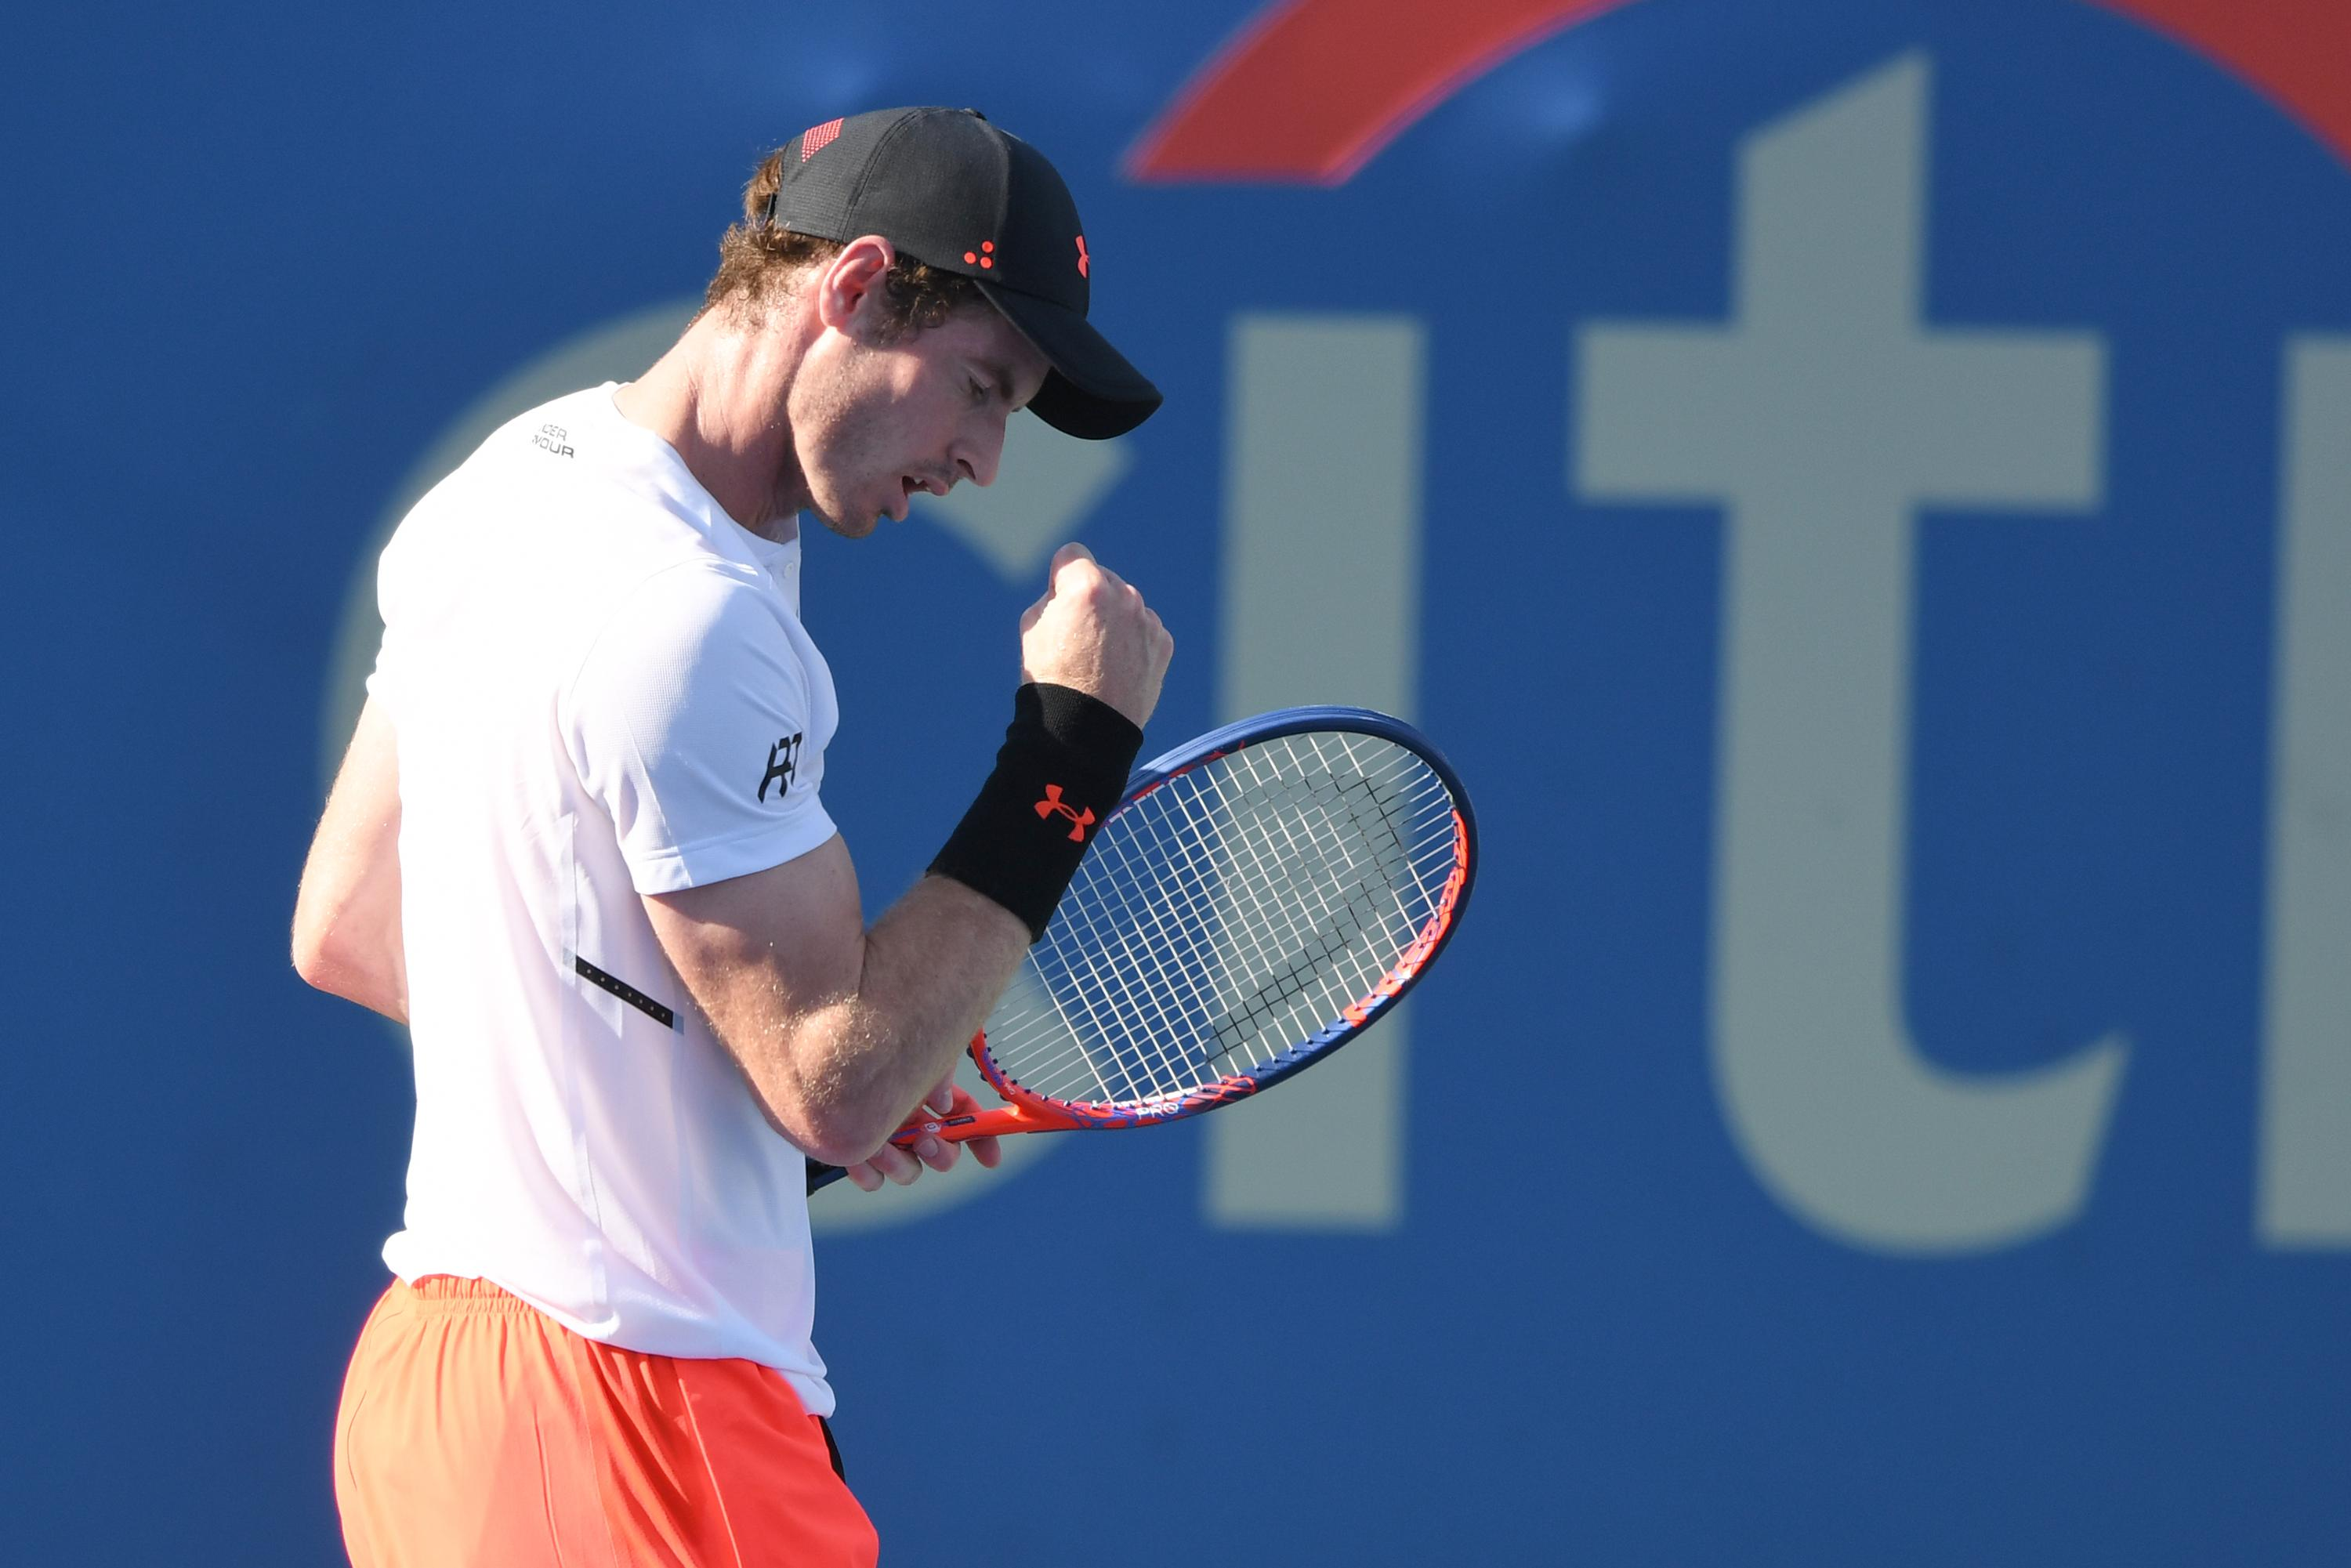 Andy Murray celebrates after taking the first set 7-6